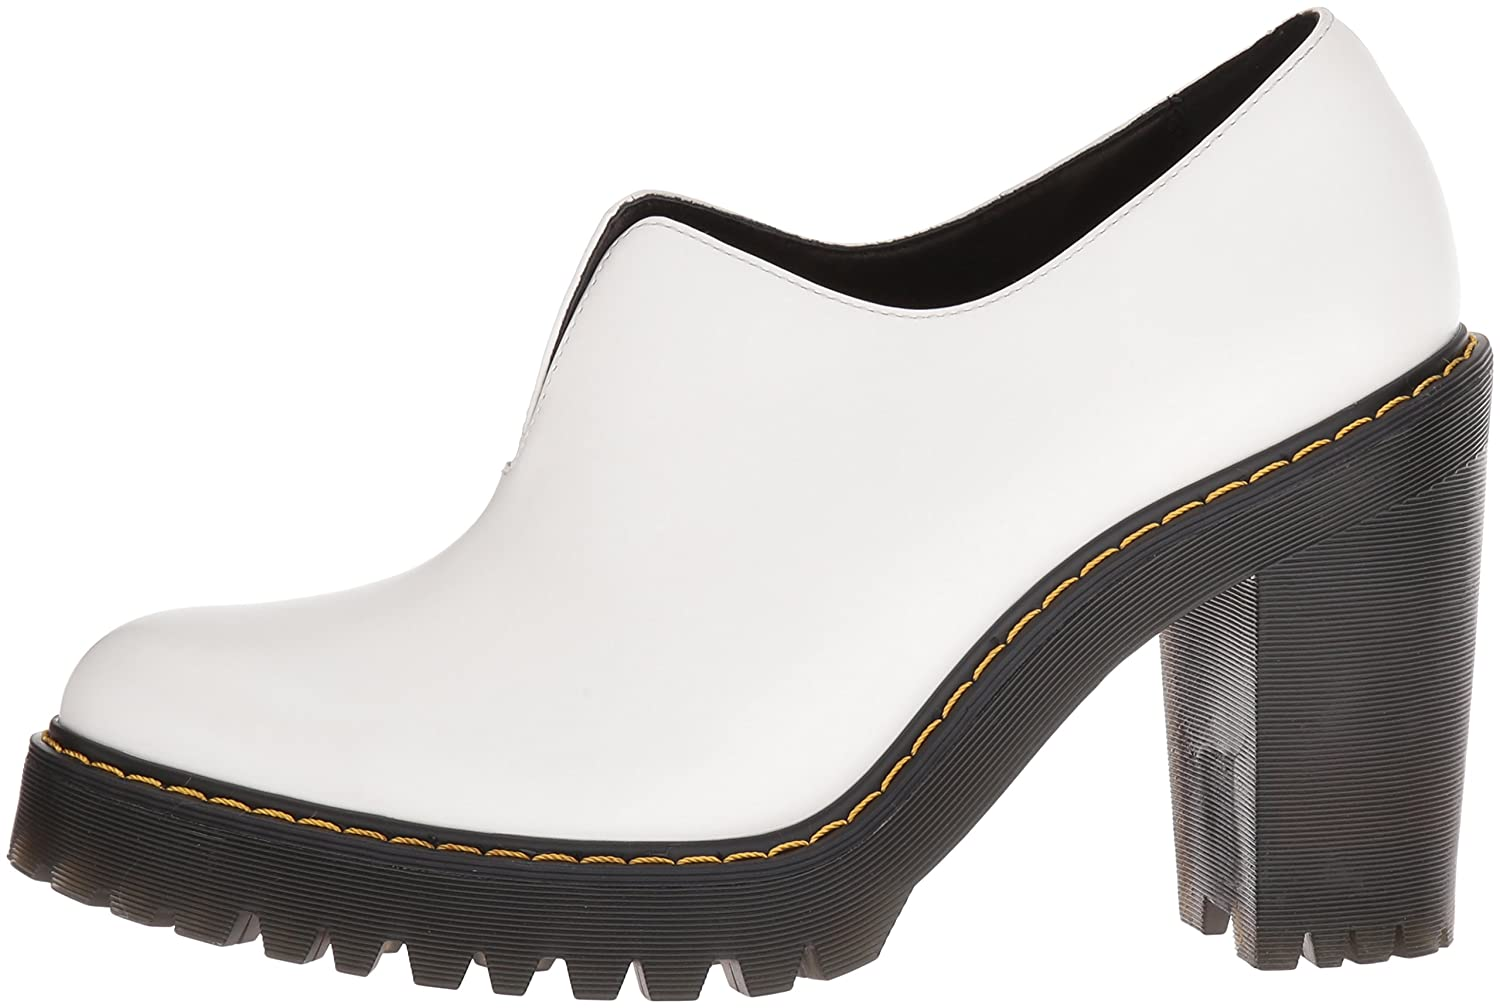 Dr. Martens Women's Cordelia M Dress Pump B01AO9JISQ 7 UK/9 M Cordelia US|White 7f72b0